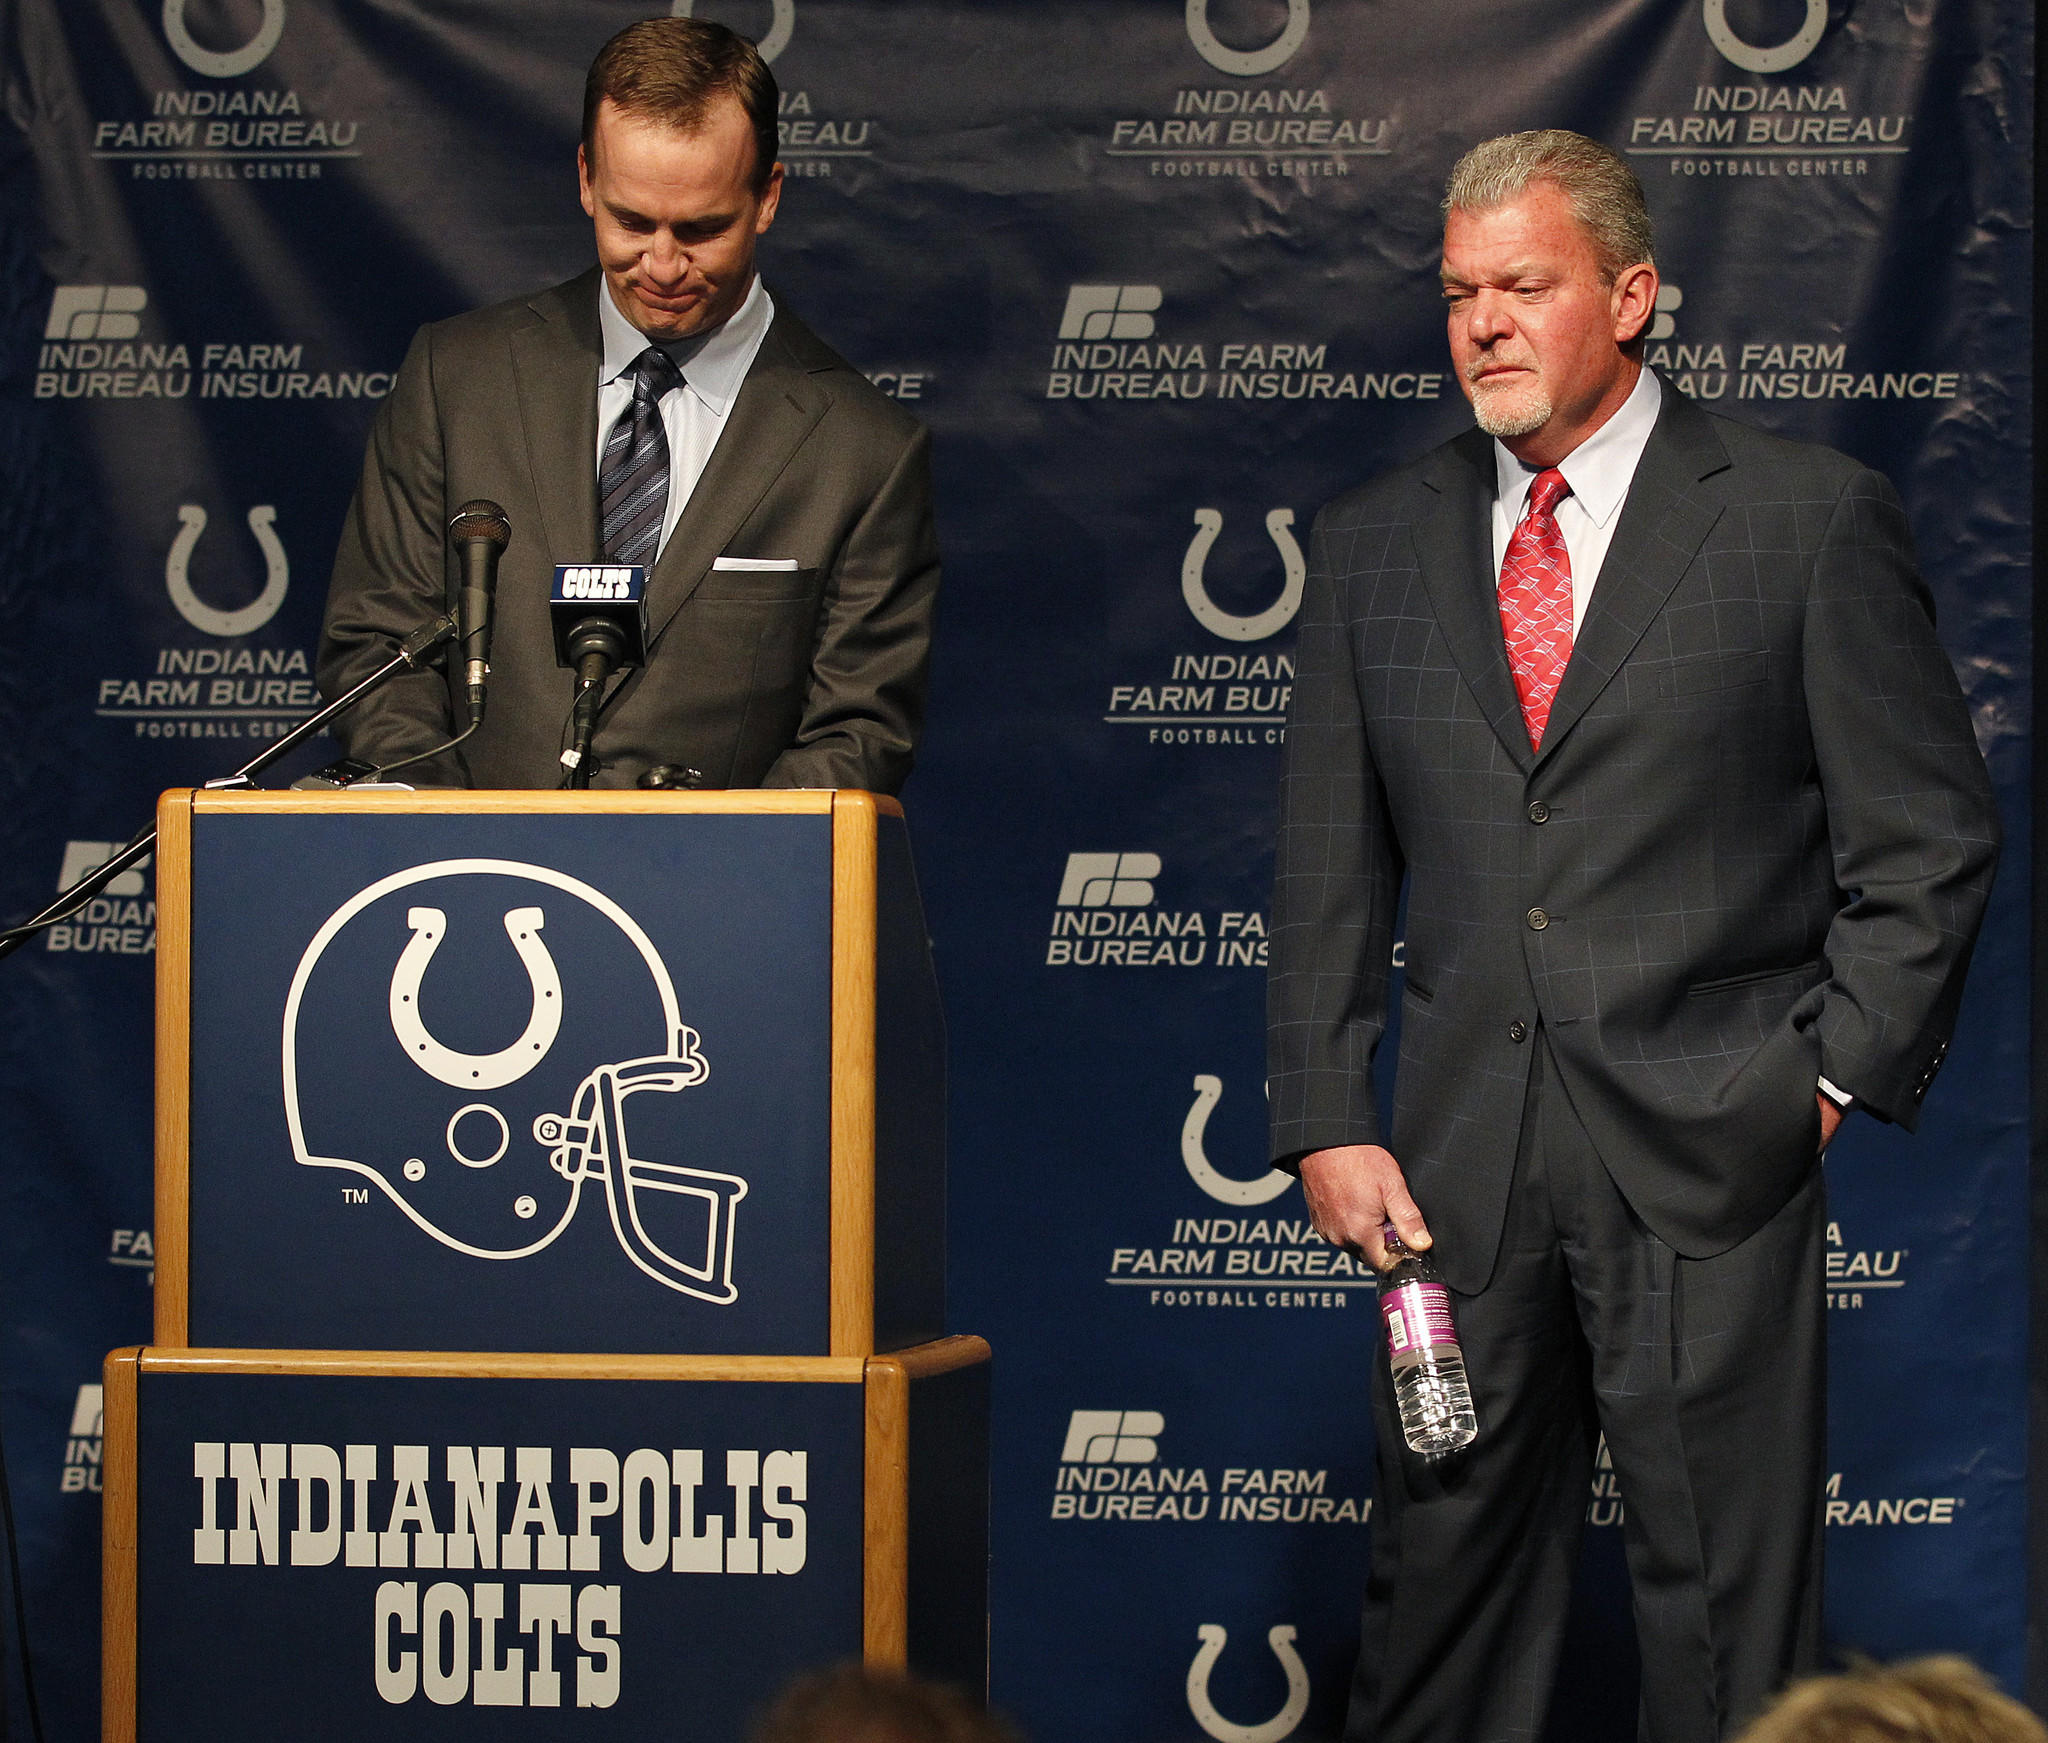 Colts owner Jim Irsay in 2012, when the team cut ties with quarterback Peyton Manning.